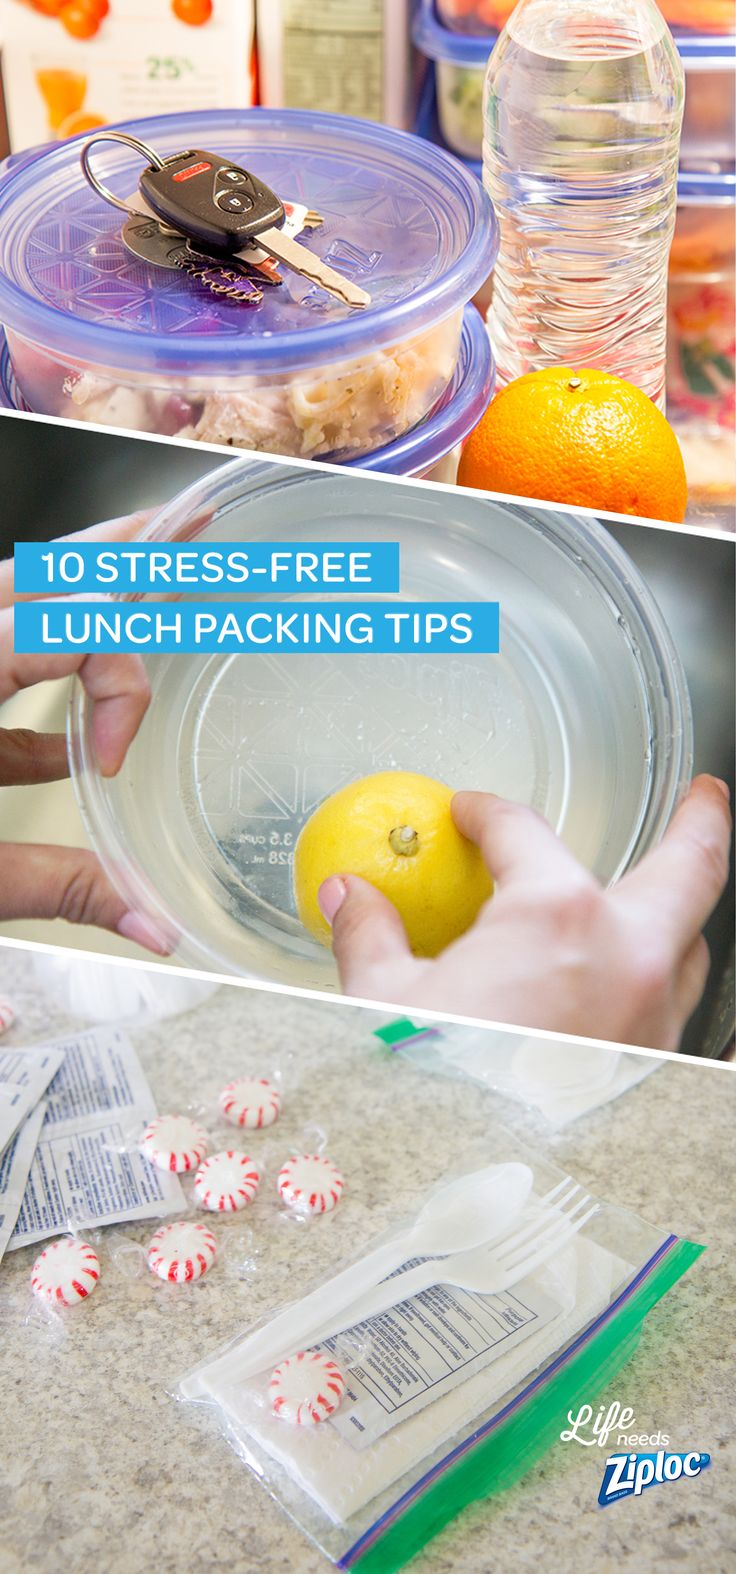 """Follow these easy tips to make packing (and remembering) your lunch a breeze. Helpful ideas for creating an organized lunch-packing station, keeping Ziploc® containers stain free, and making lunchtime """"tool kits"""" so you never forget a fork or spoon again."""